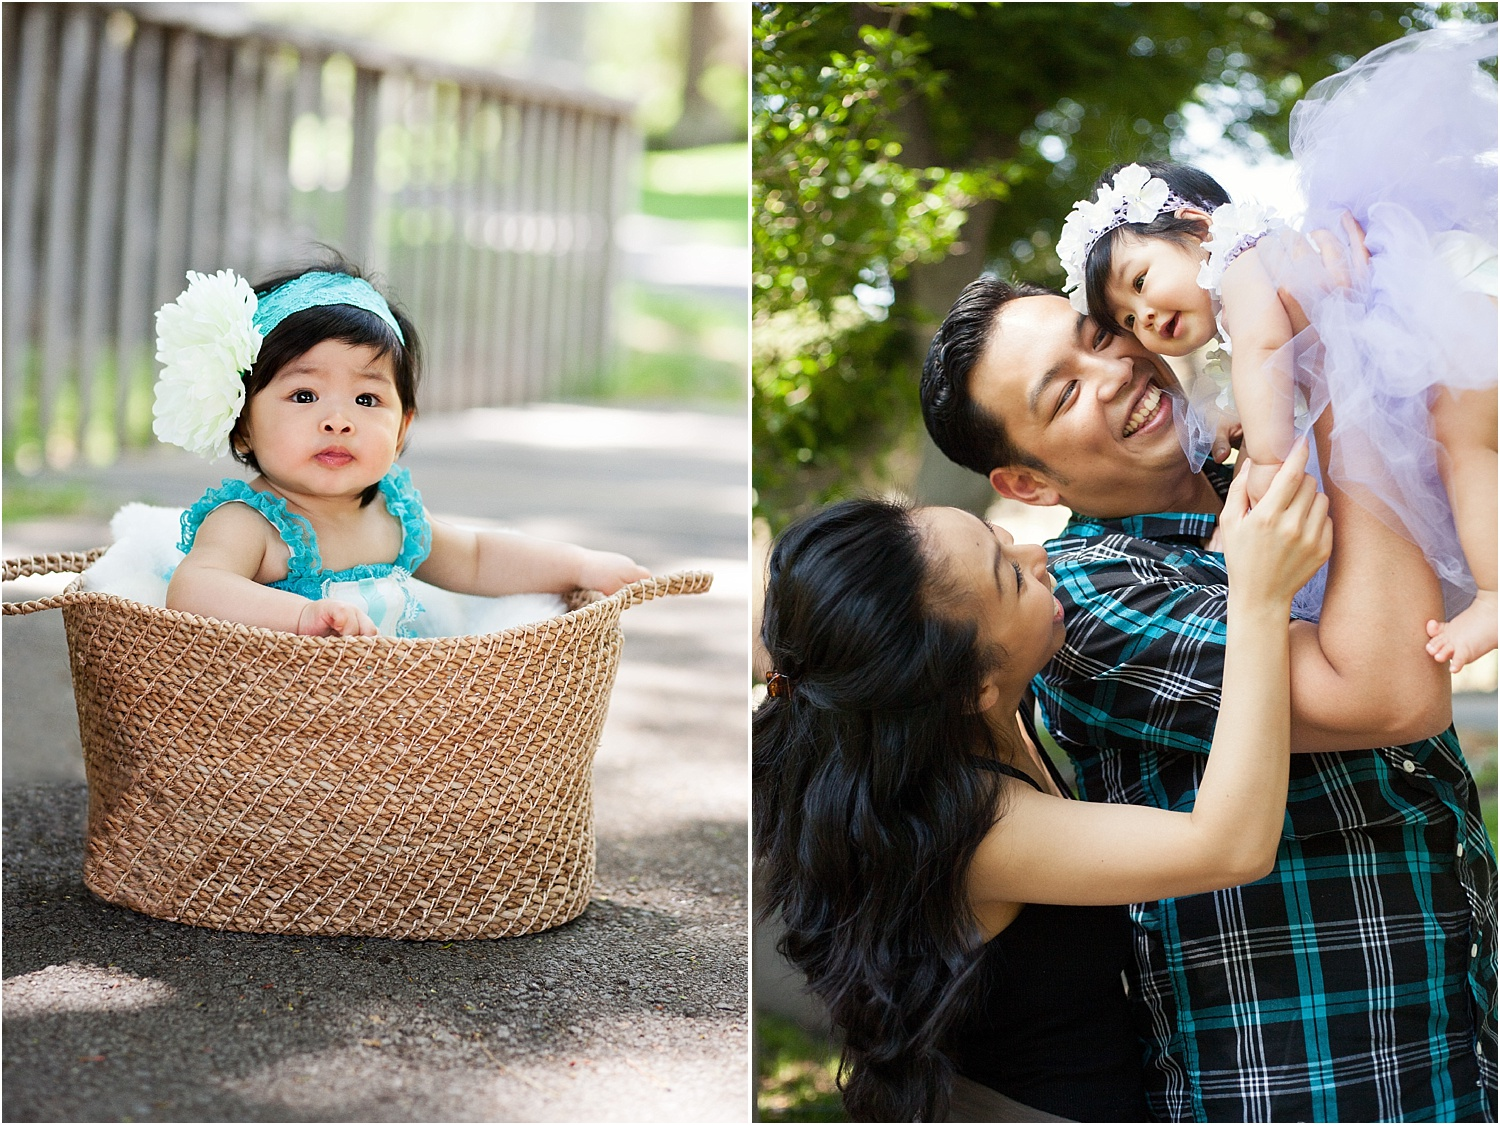 8 - Photographing Mini-Sessions